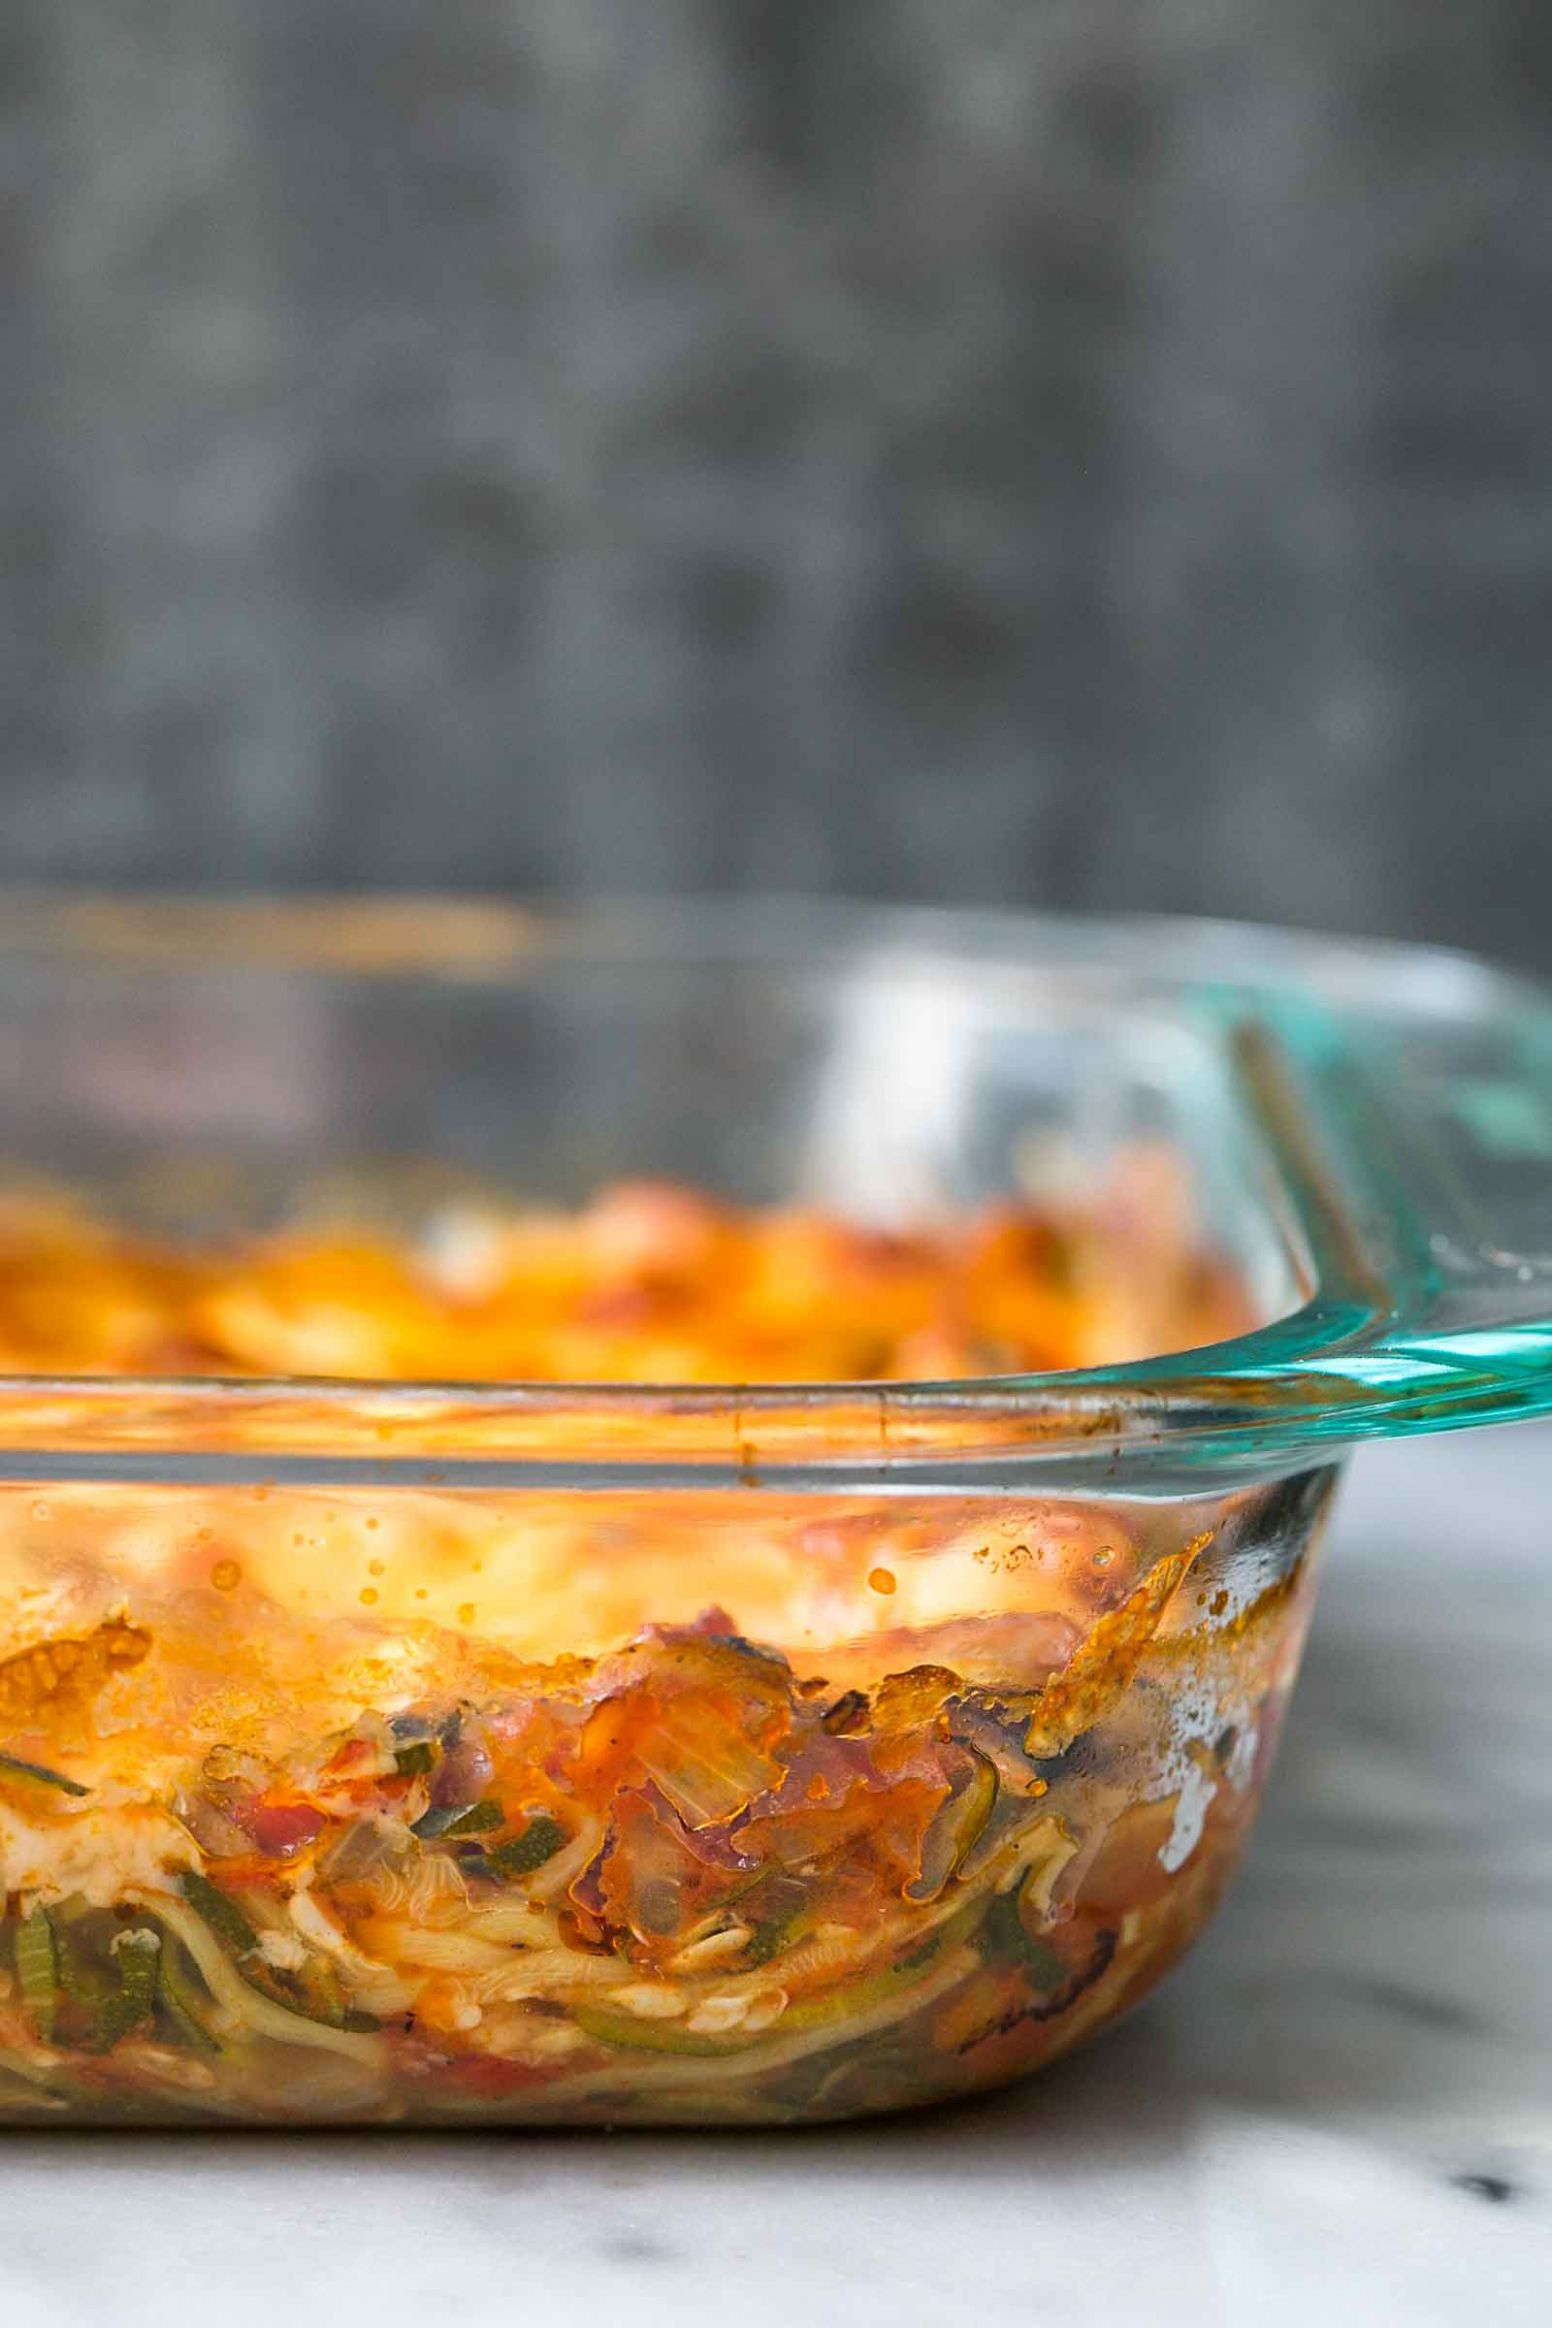 Cheesy Baked Zucchini Noodle Casserole - Cooking Zucchini Pasta In Oven